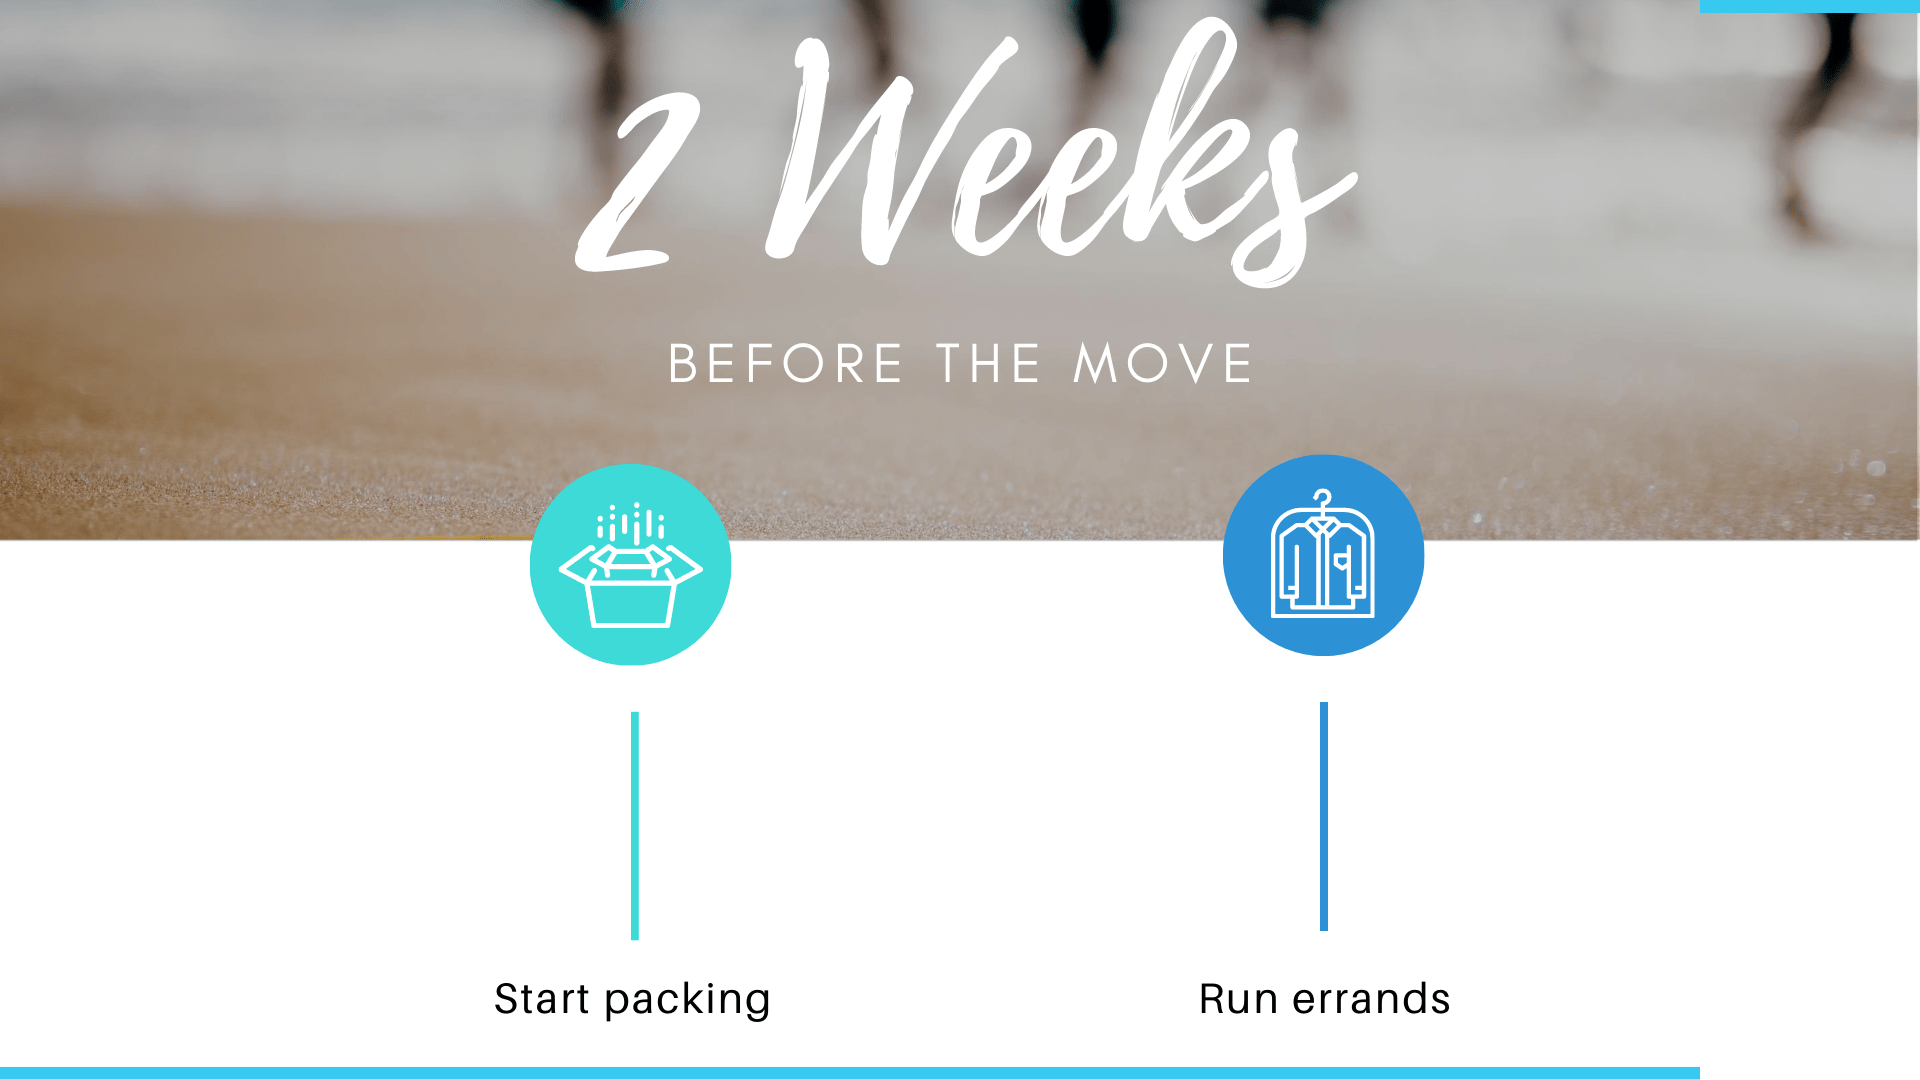 What to do 2 weeks before the move date